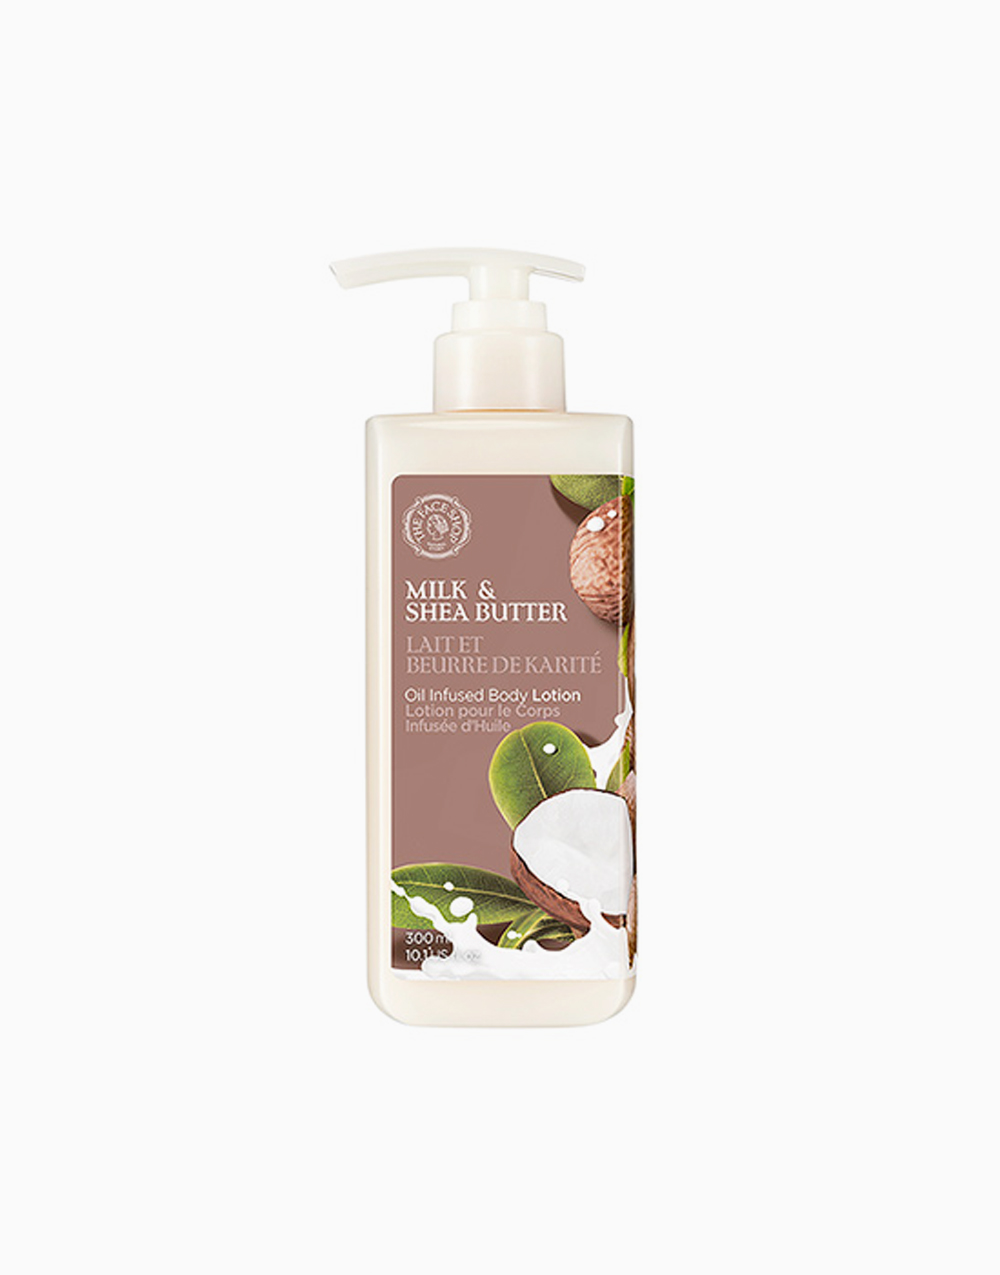 Milk & Shea Butter Oil Infused Body Lotion by The Face Shop